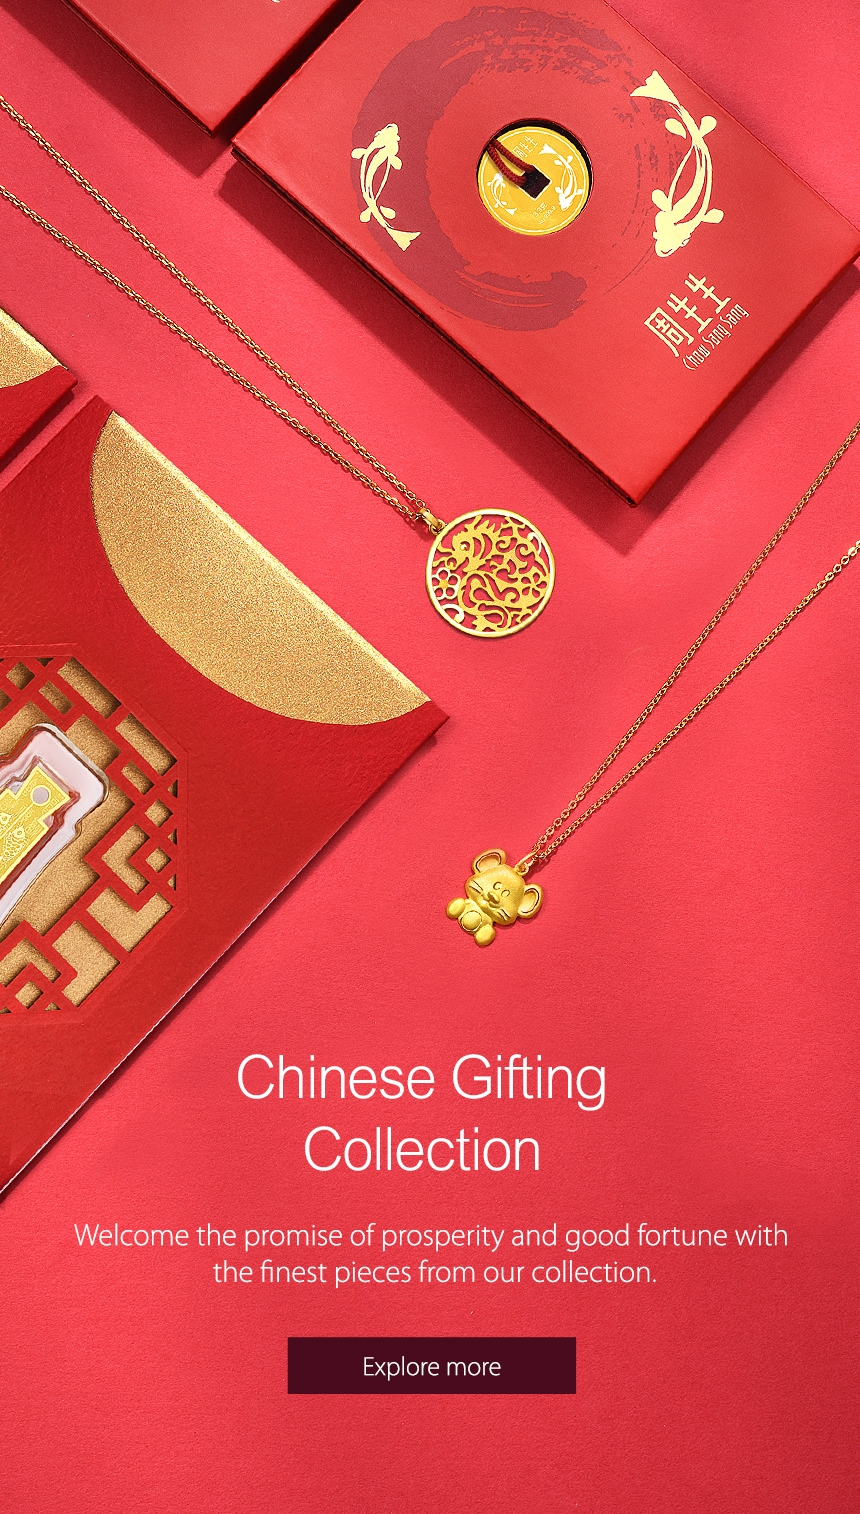 Chinese Gifting Collection